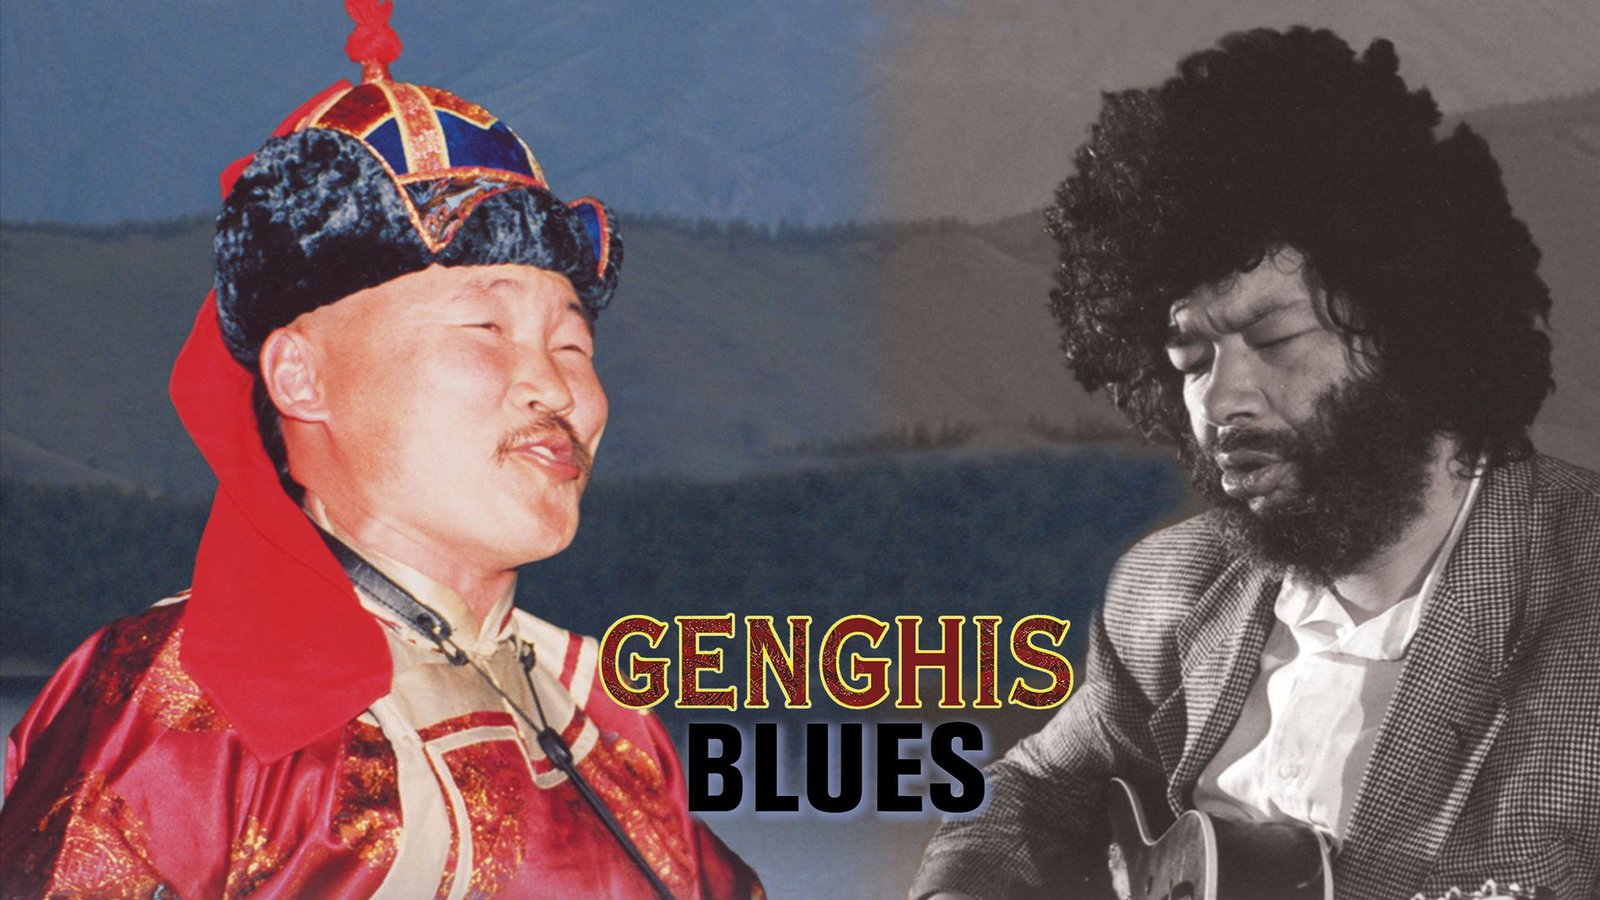 Genghis Blues